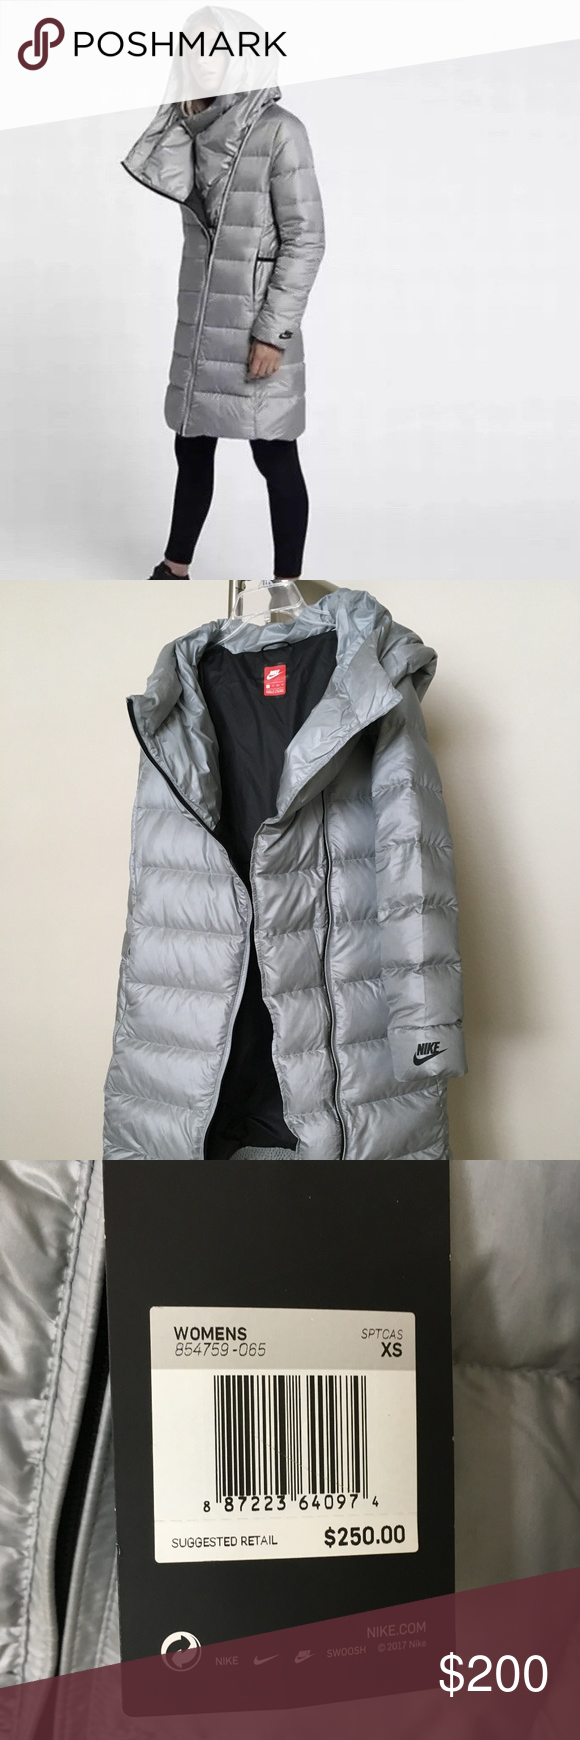 b30f22b4b6 Nike Women s Down Fill Parka Jacket XS New Nike Sportswear Women s Down  Fill Parka Jacket Size XS. The size says XS